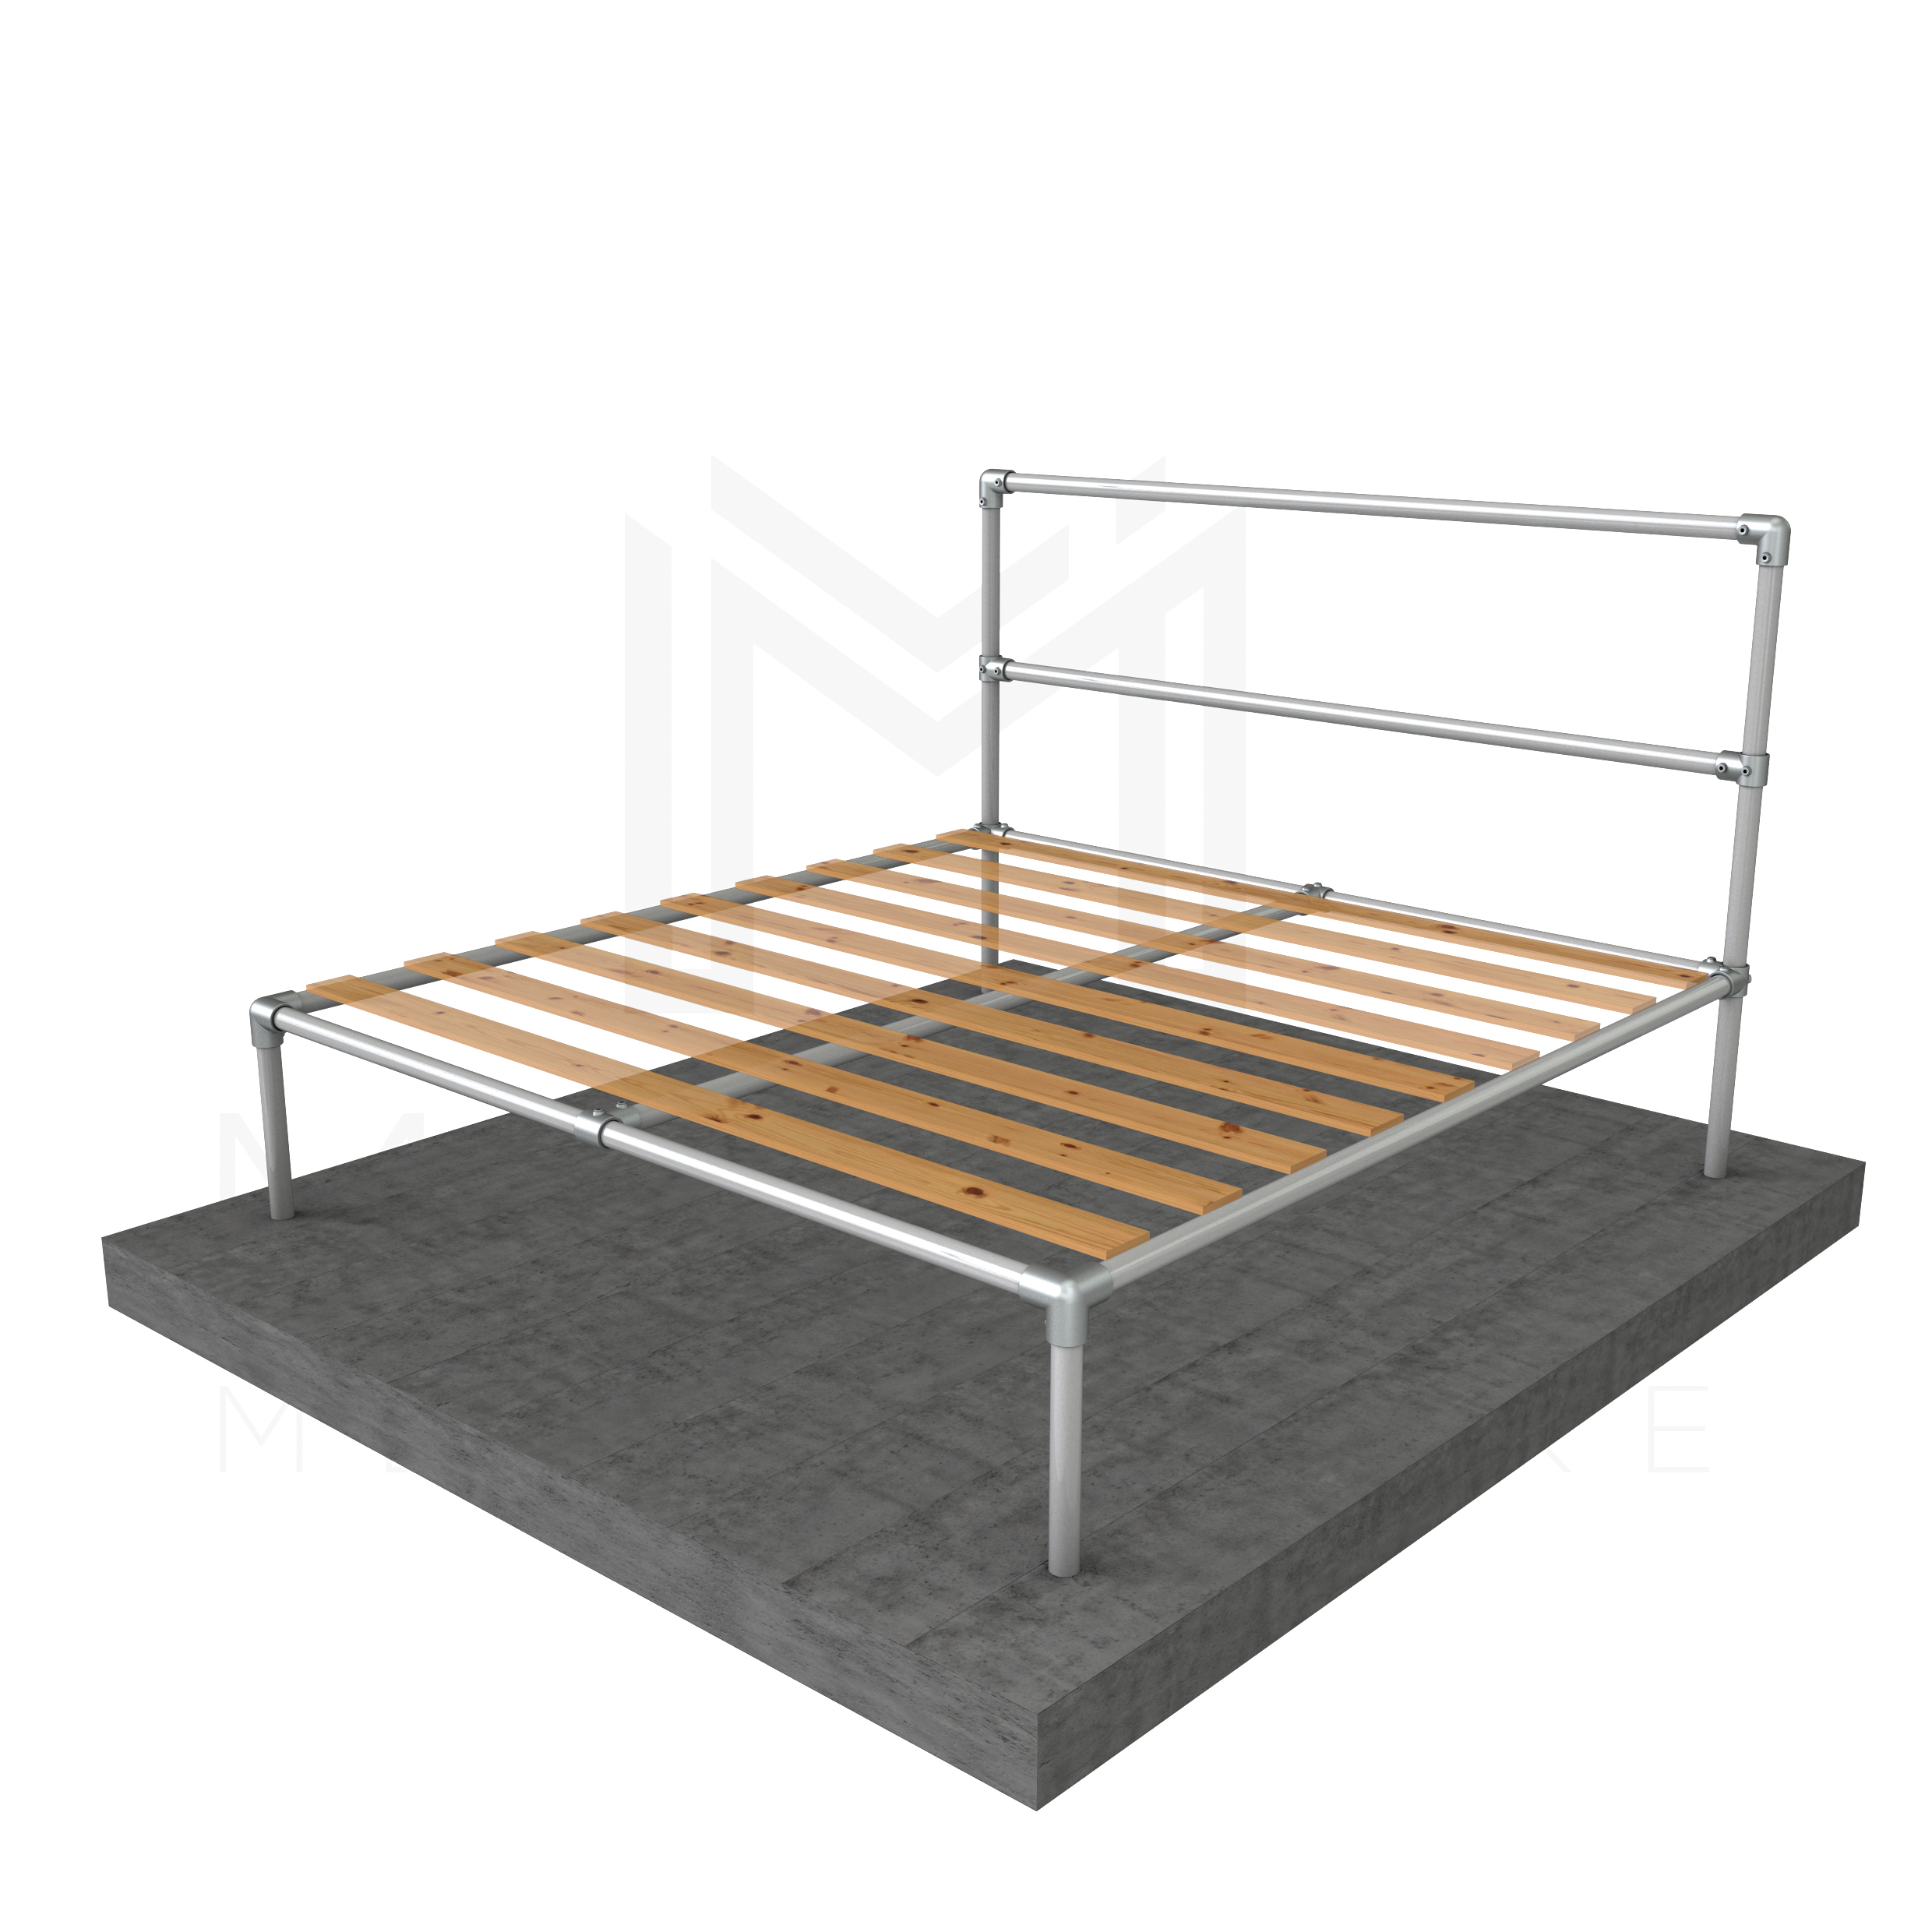 Full Queen size bed basic frame - Modular Metal Store